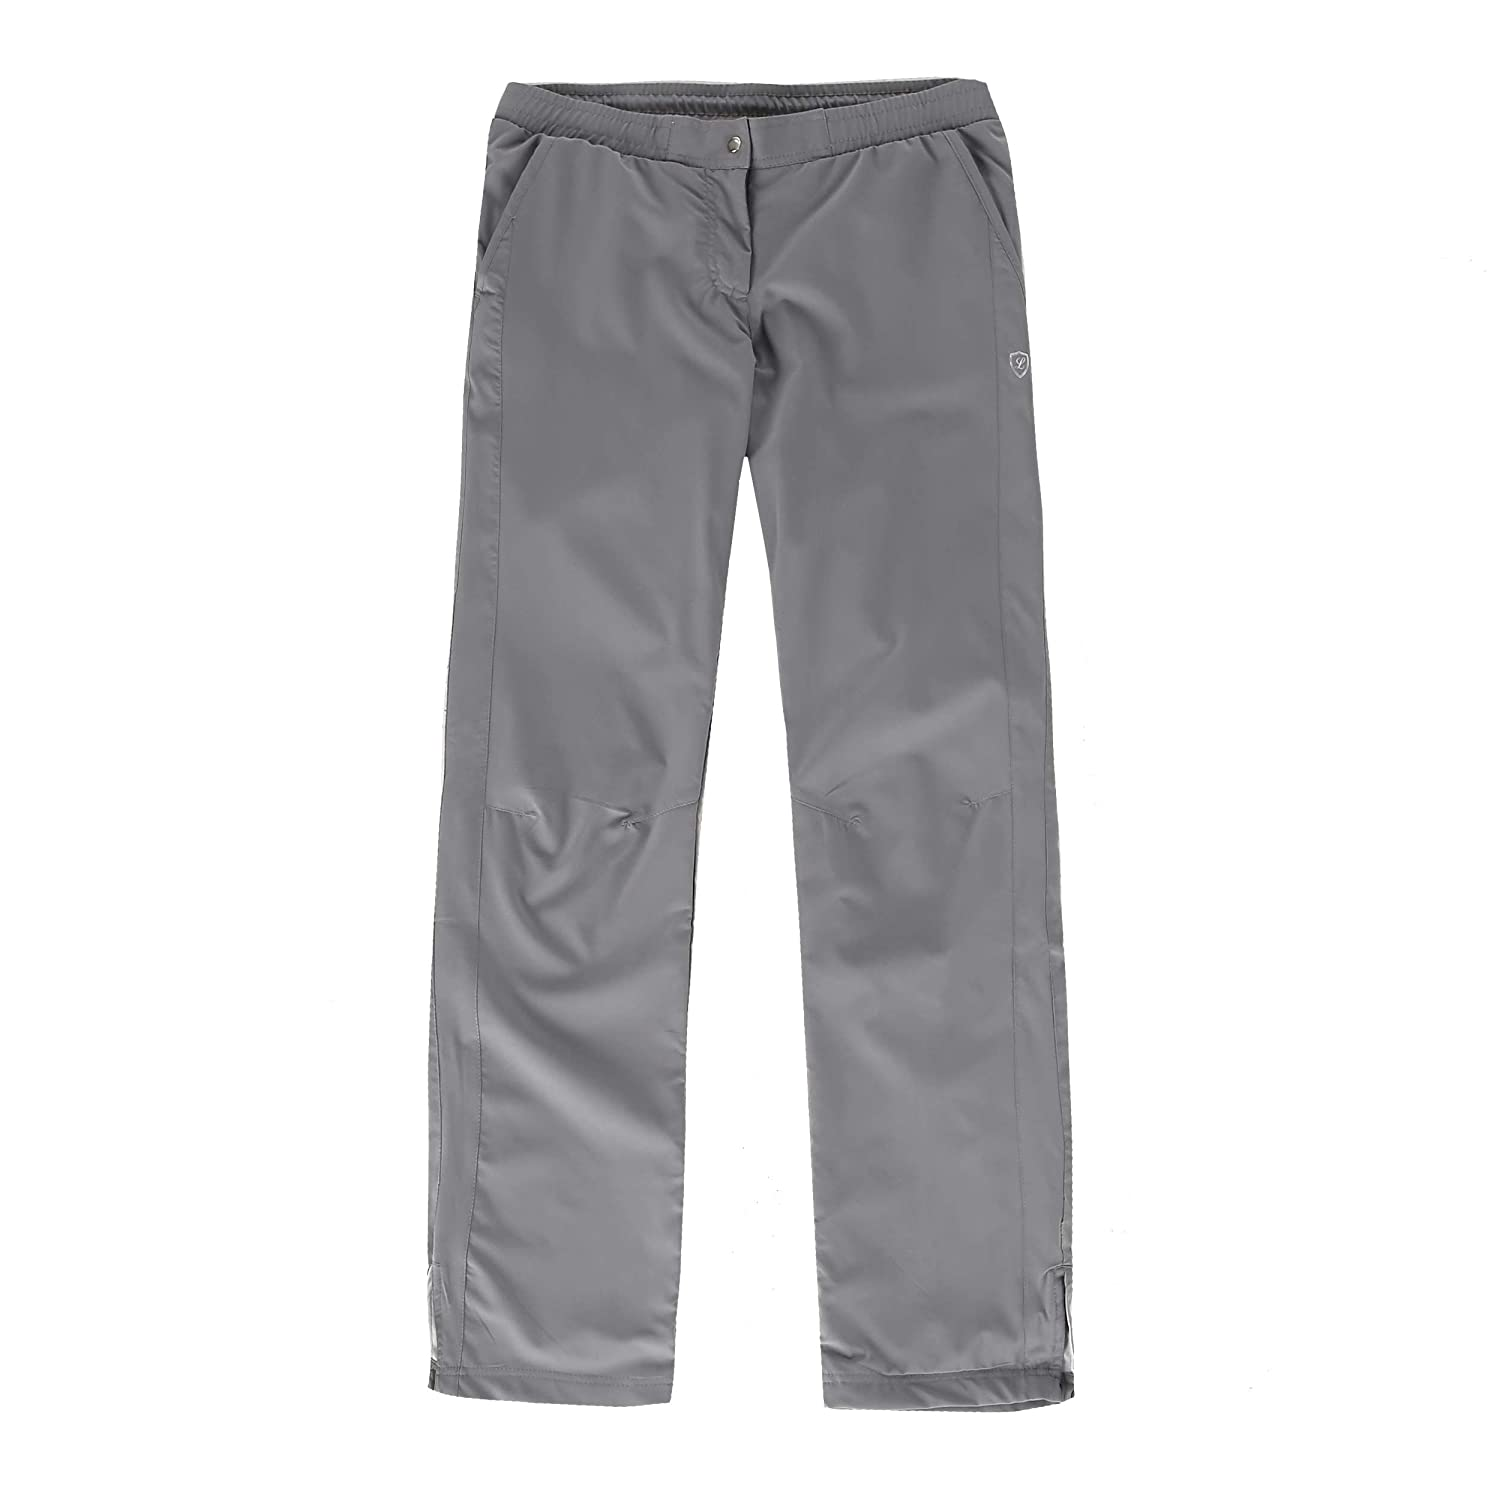 Limited Sports Oberbekleidung Pants Single Classic Stretch Hosen